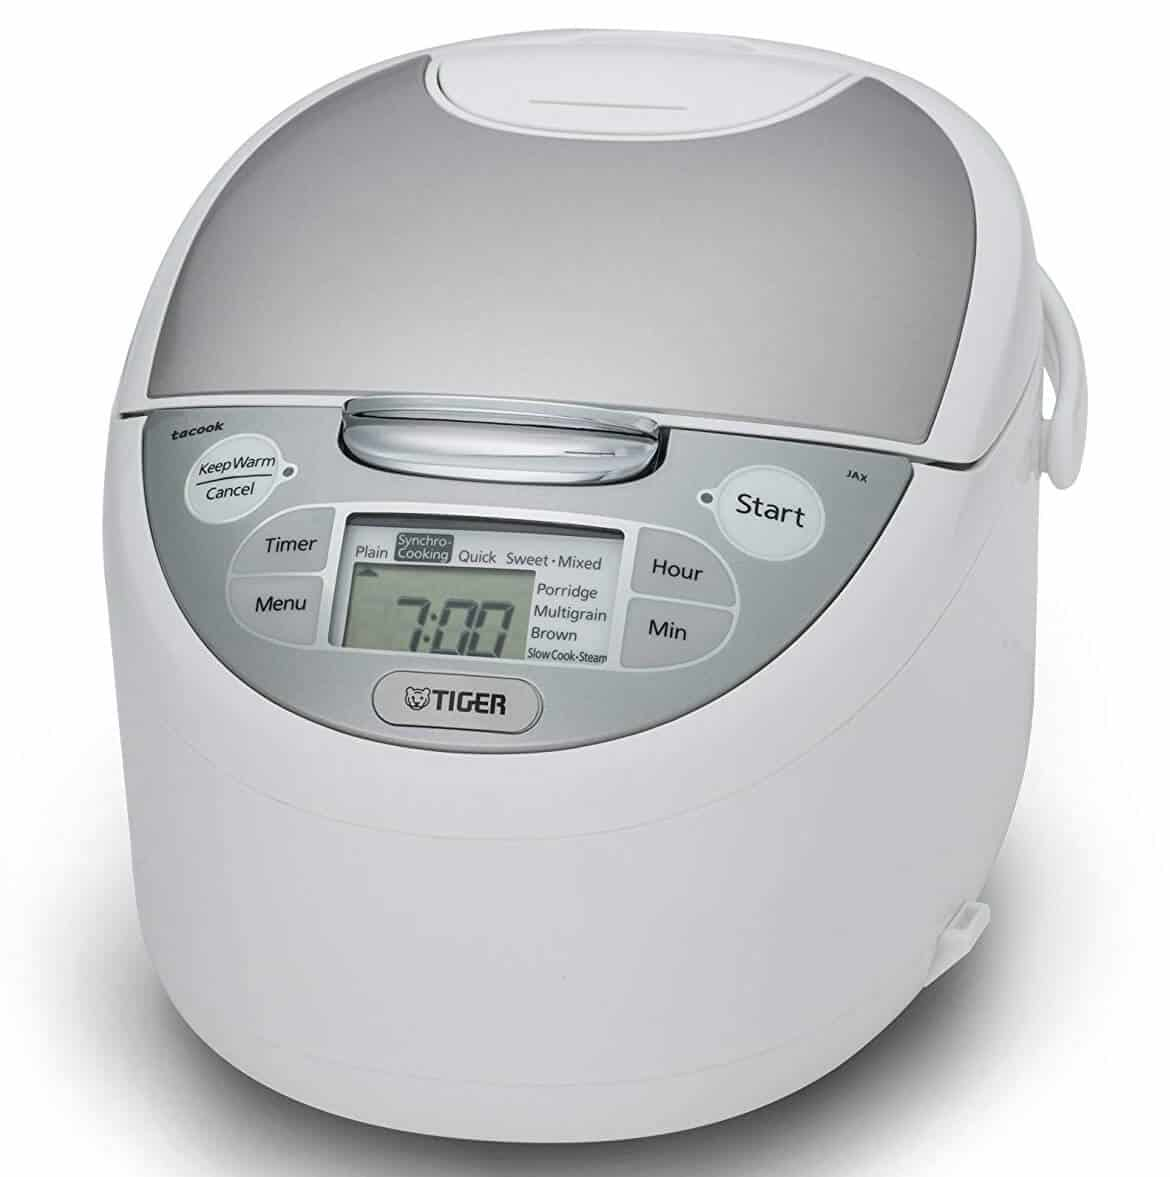 Tiger JAX-S Micom Rice Cooker